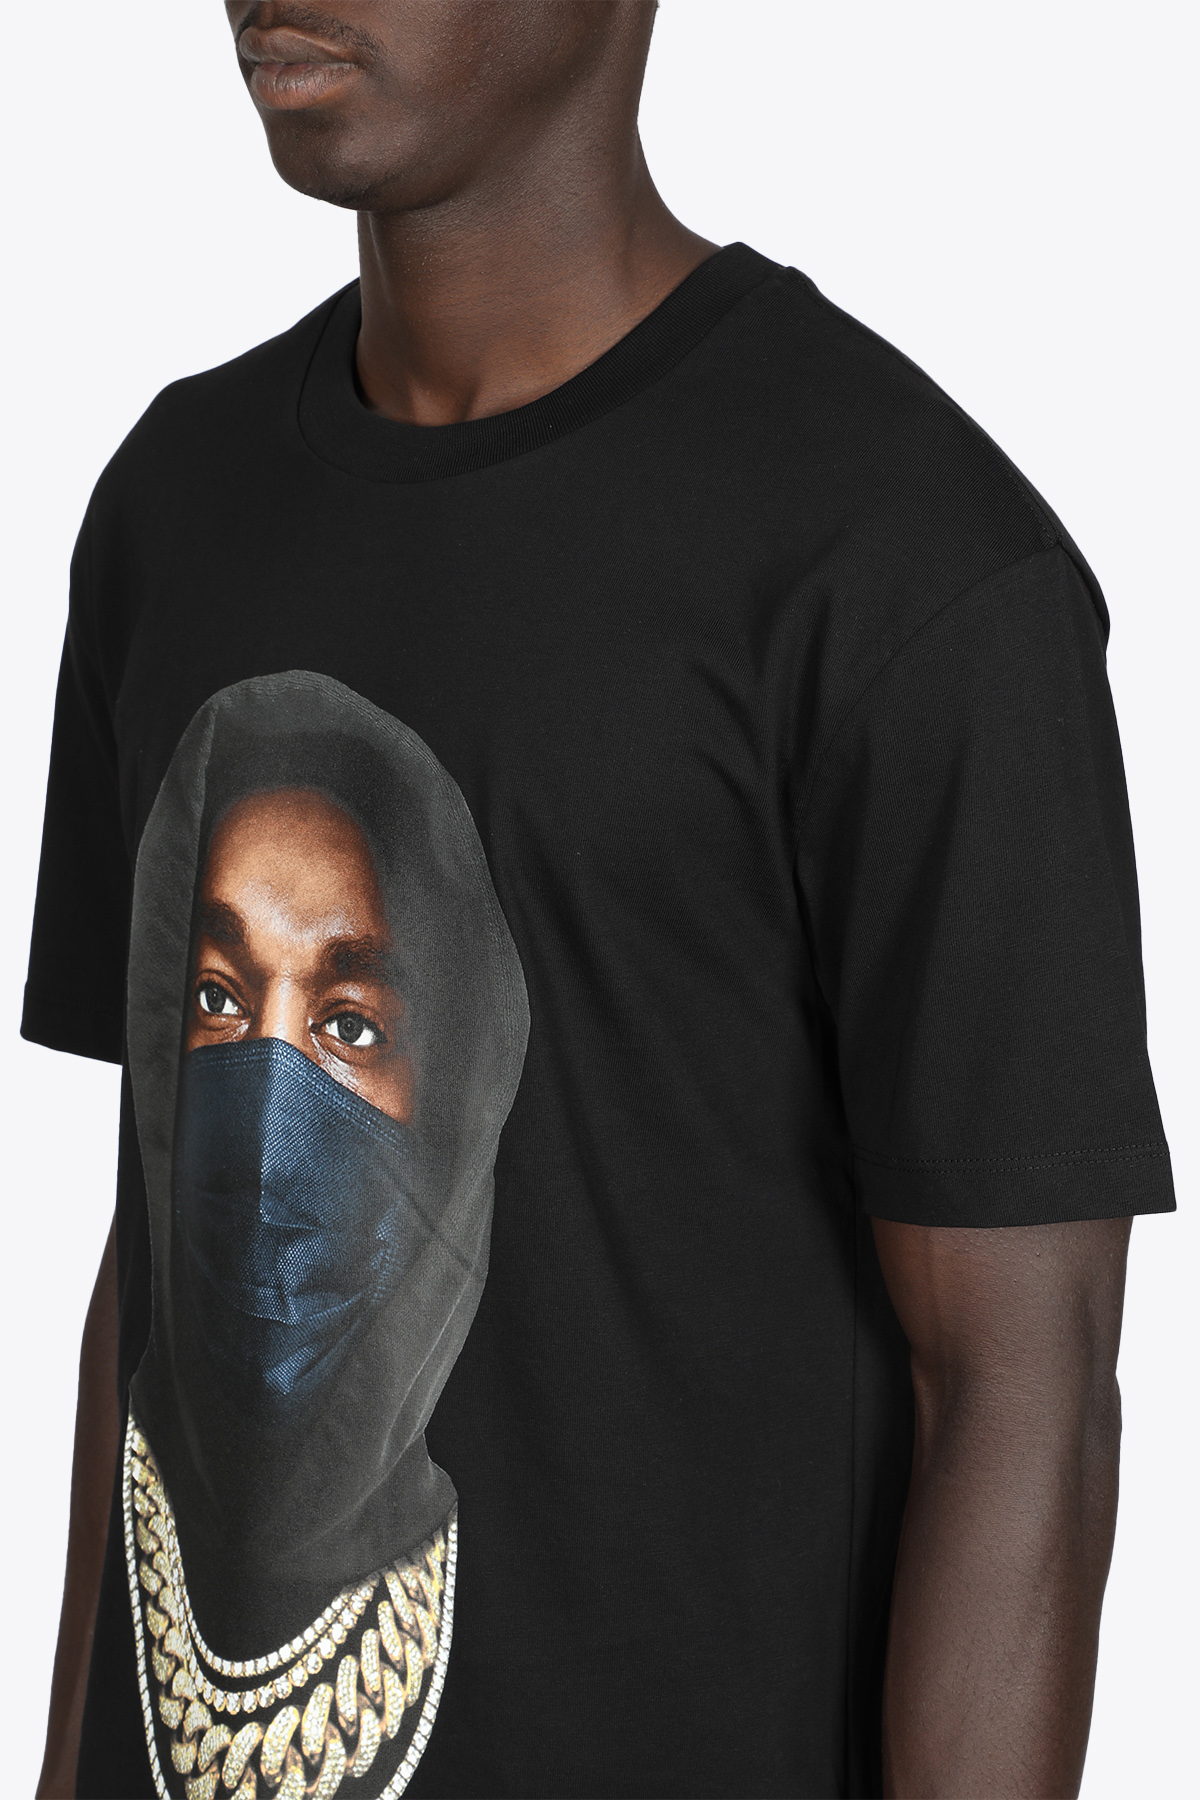 T-SHIRT NERA IN COTONE CON STAMPA MASK IH NOM UH NIT   8   NUW21251 T-SHIRT MASK ON 21009